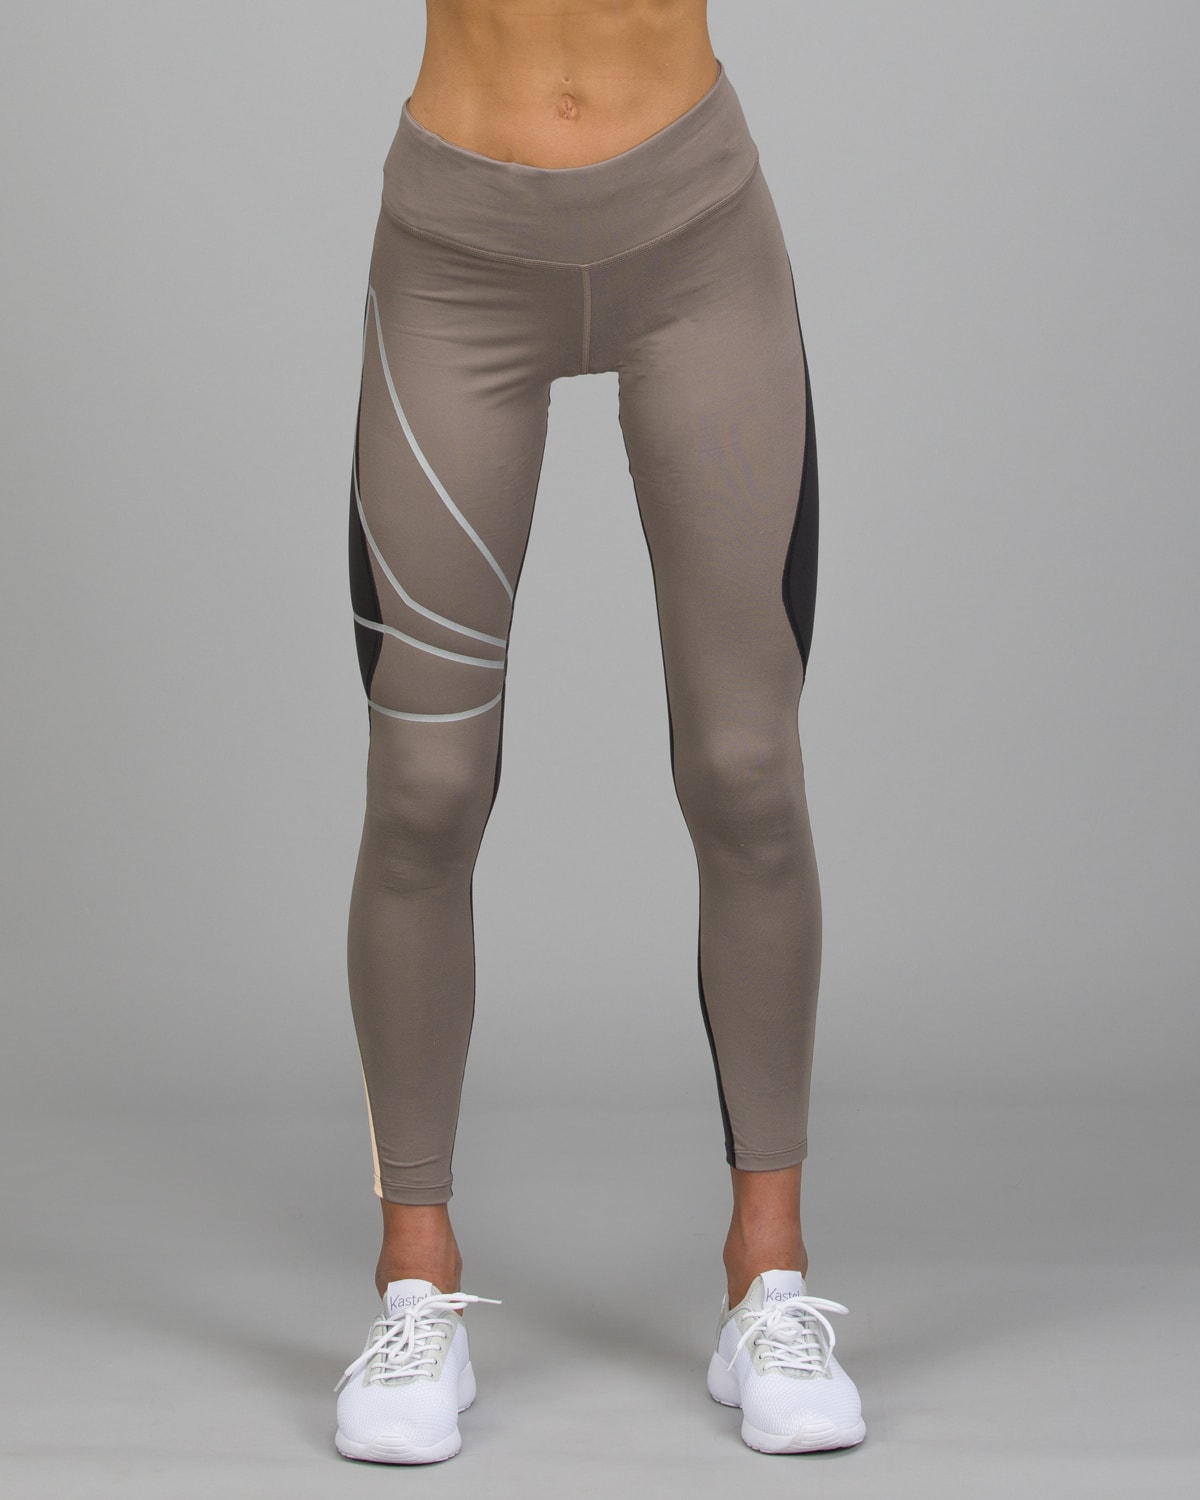 Reebok Running SpeedWick Tights.Smoky Taupe4